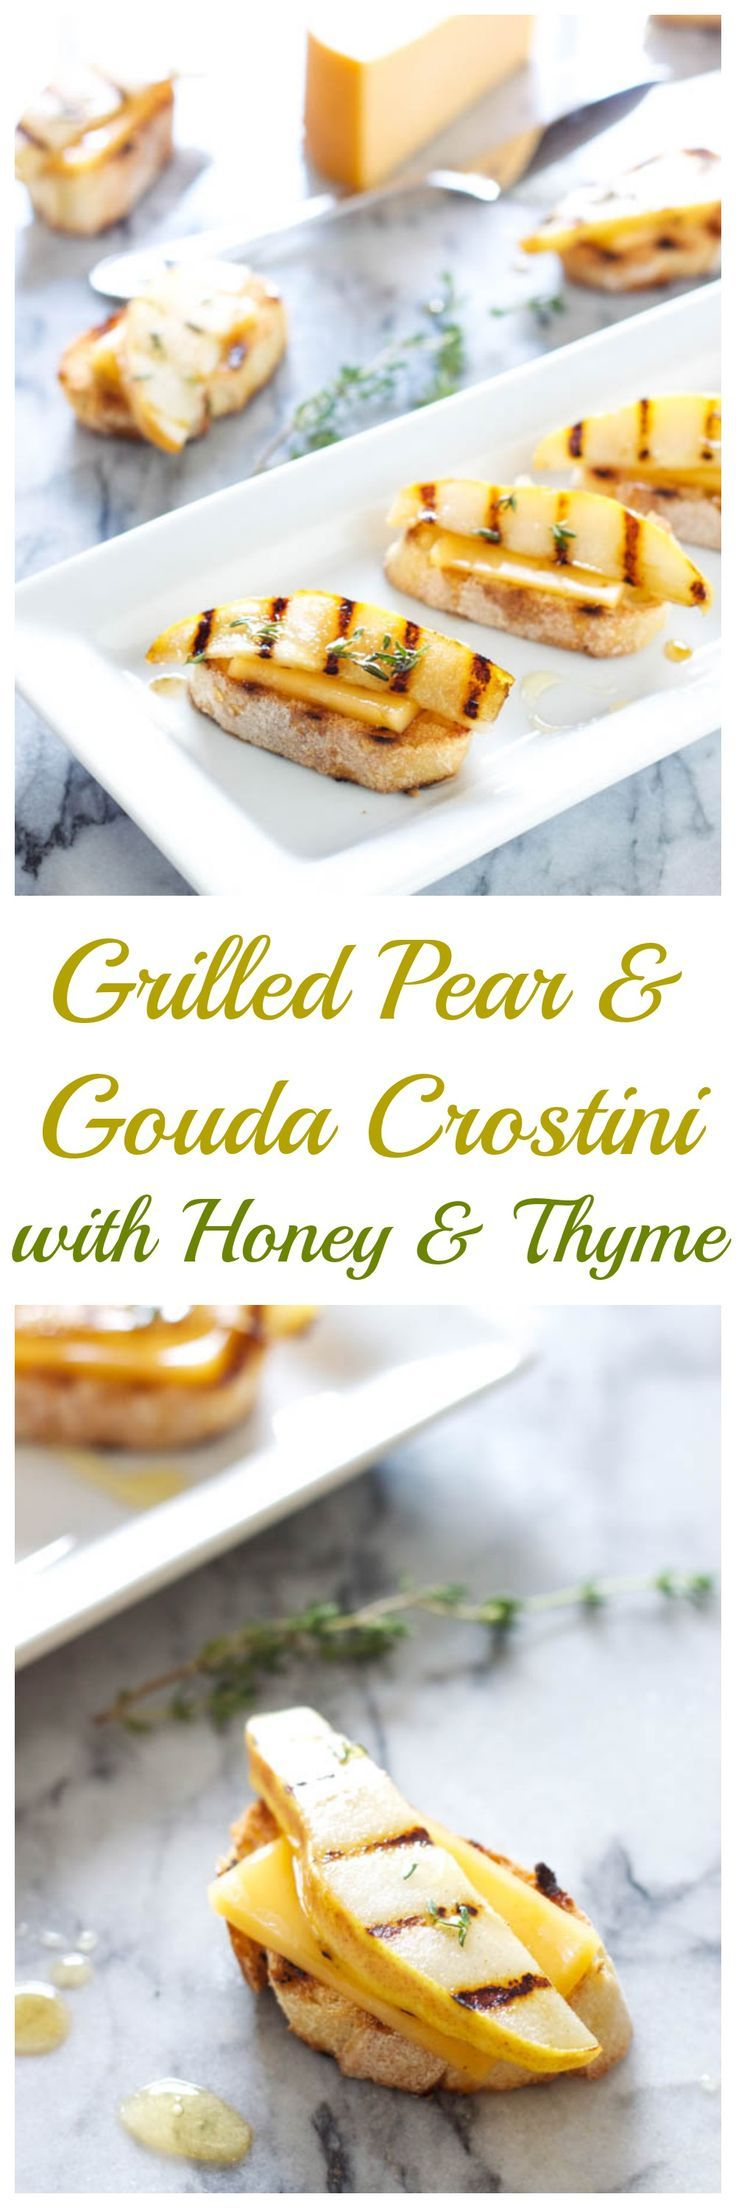 Grilled Pear and Gouda Crostini with Honey and Thyme   An easy to make appetizer combining salty cheese and sweet pears into the perfect bite!